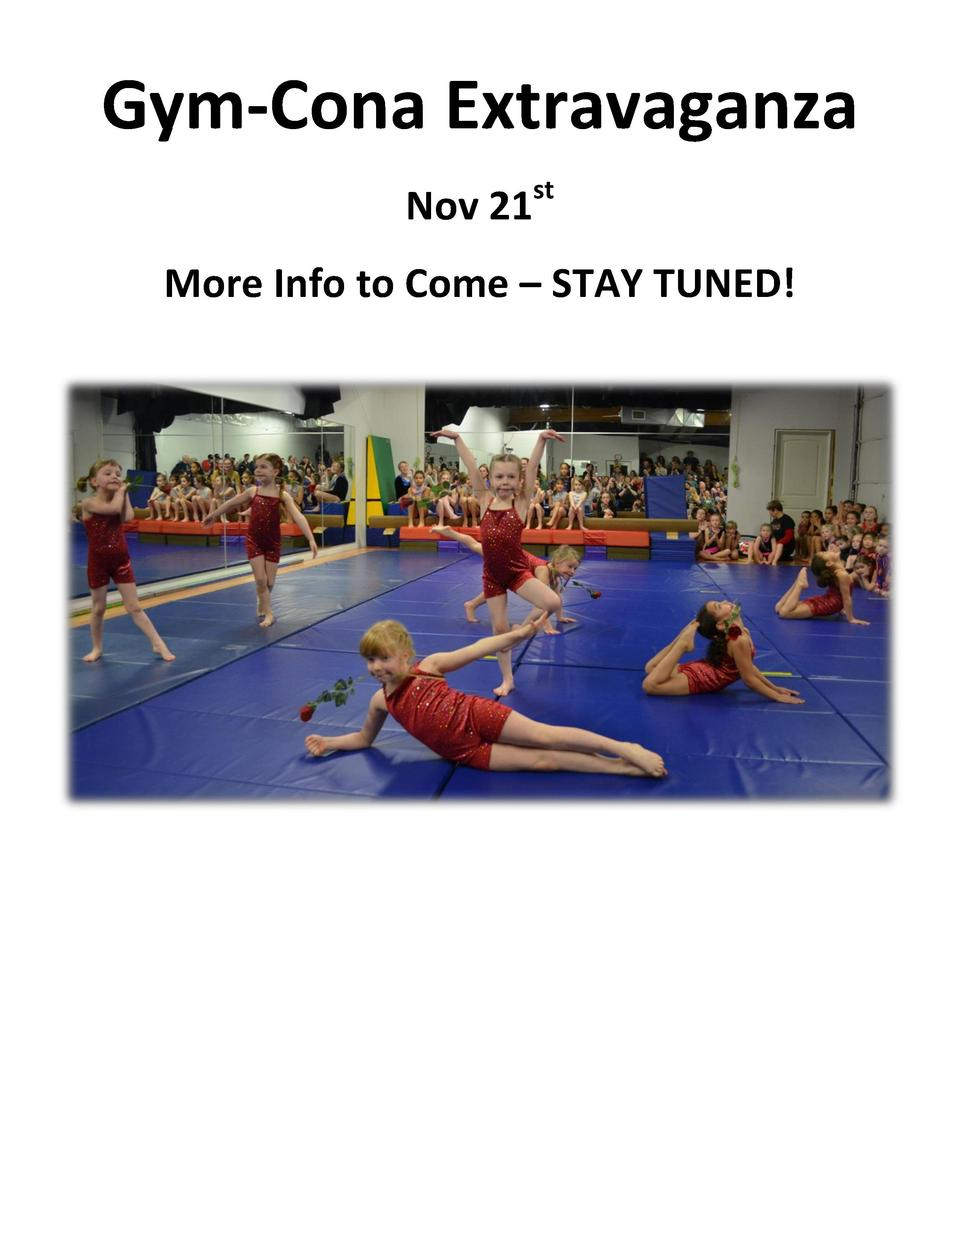 Gym-Cona Extravaganza Nov 21st More Info to Come     STAY TUNED